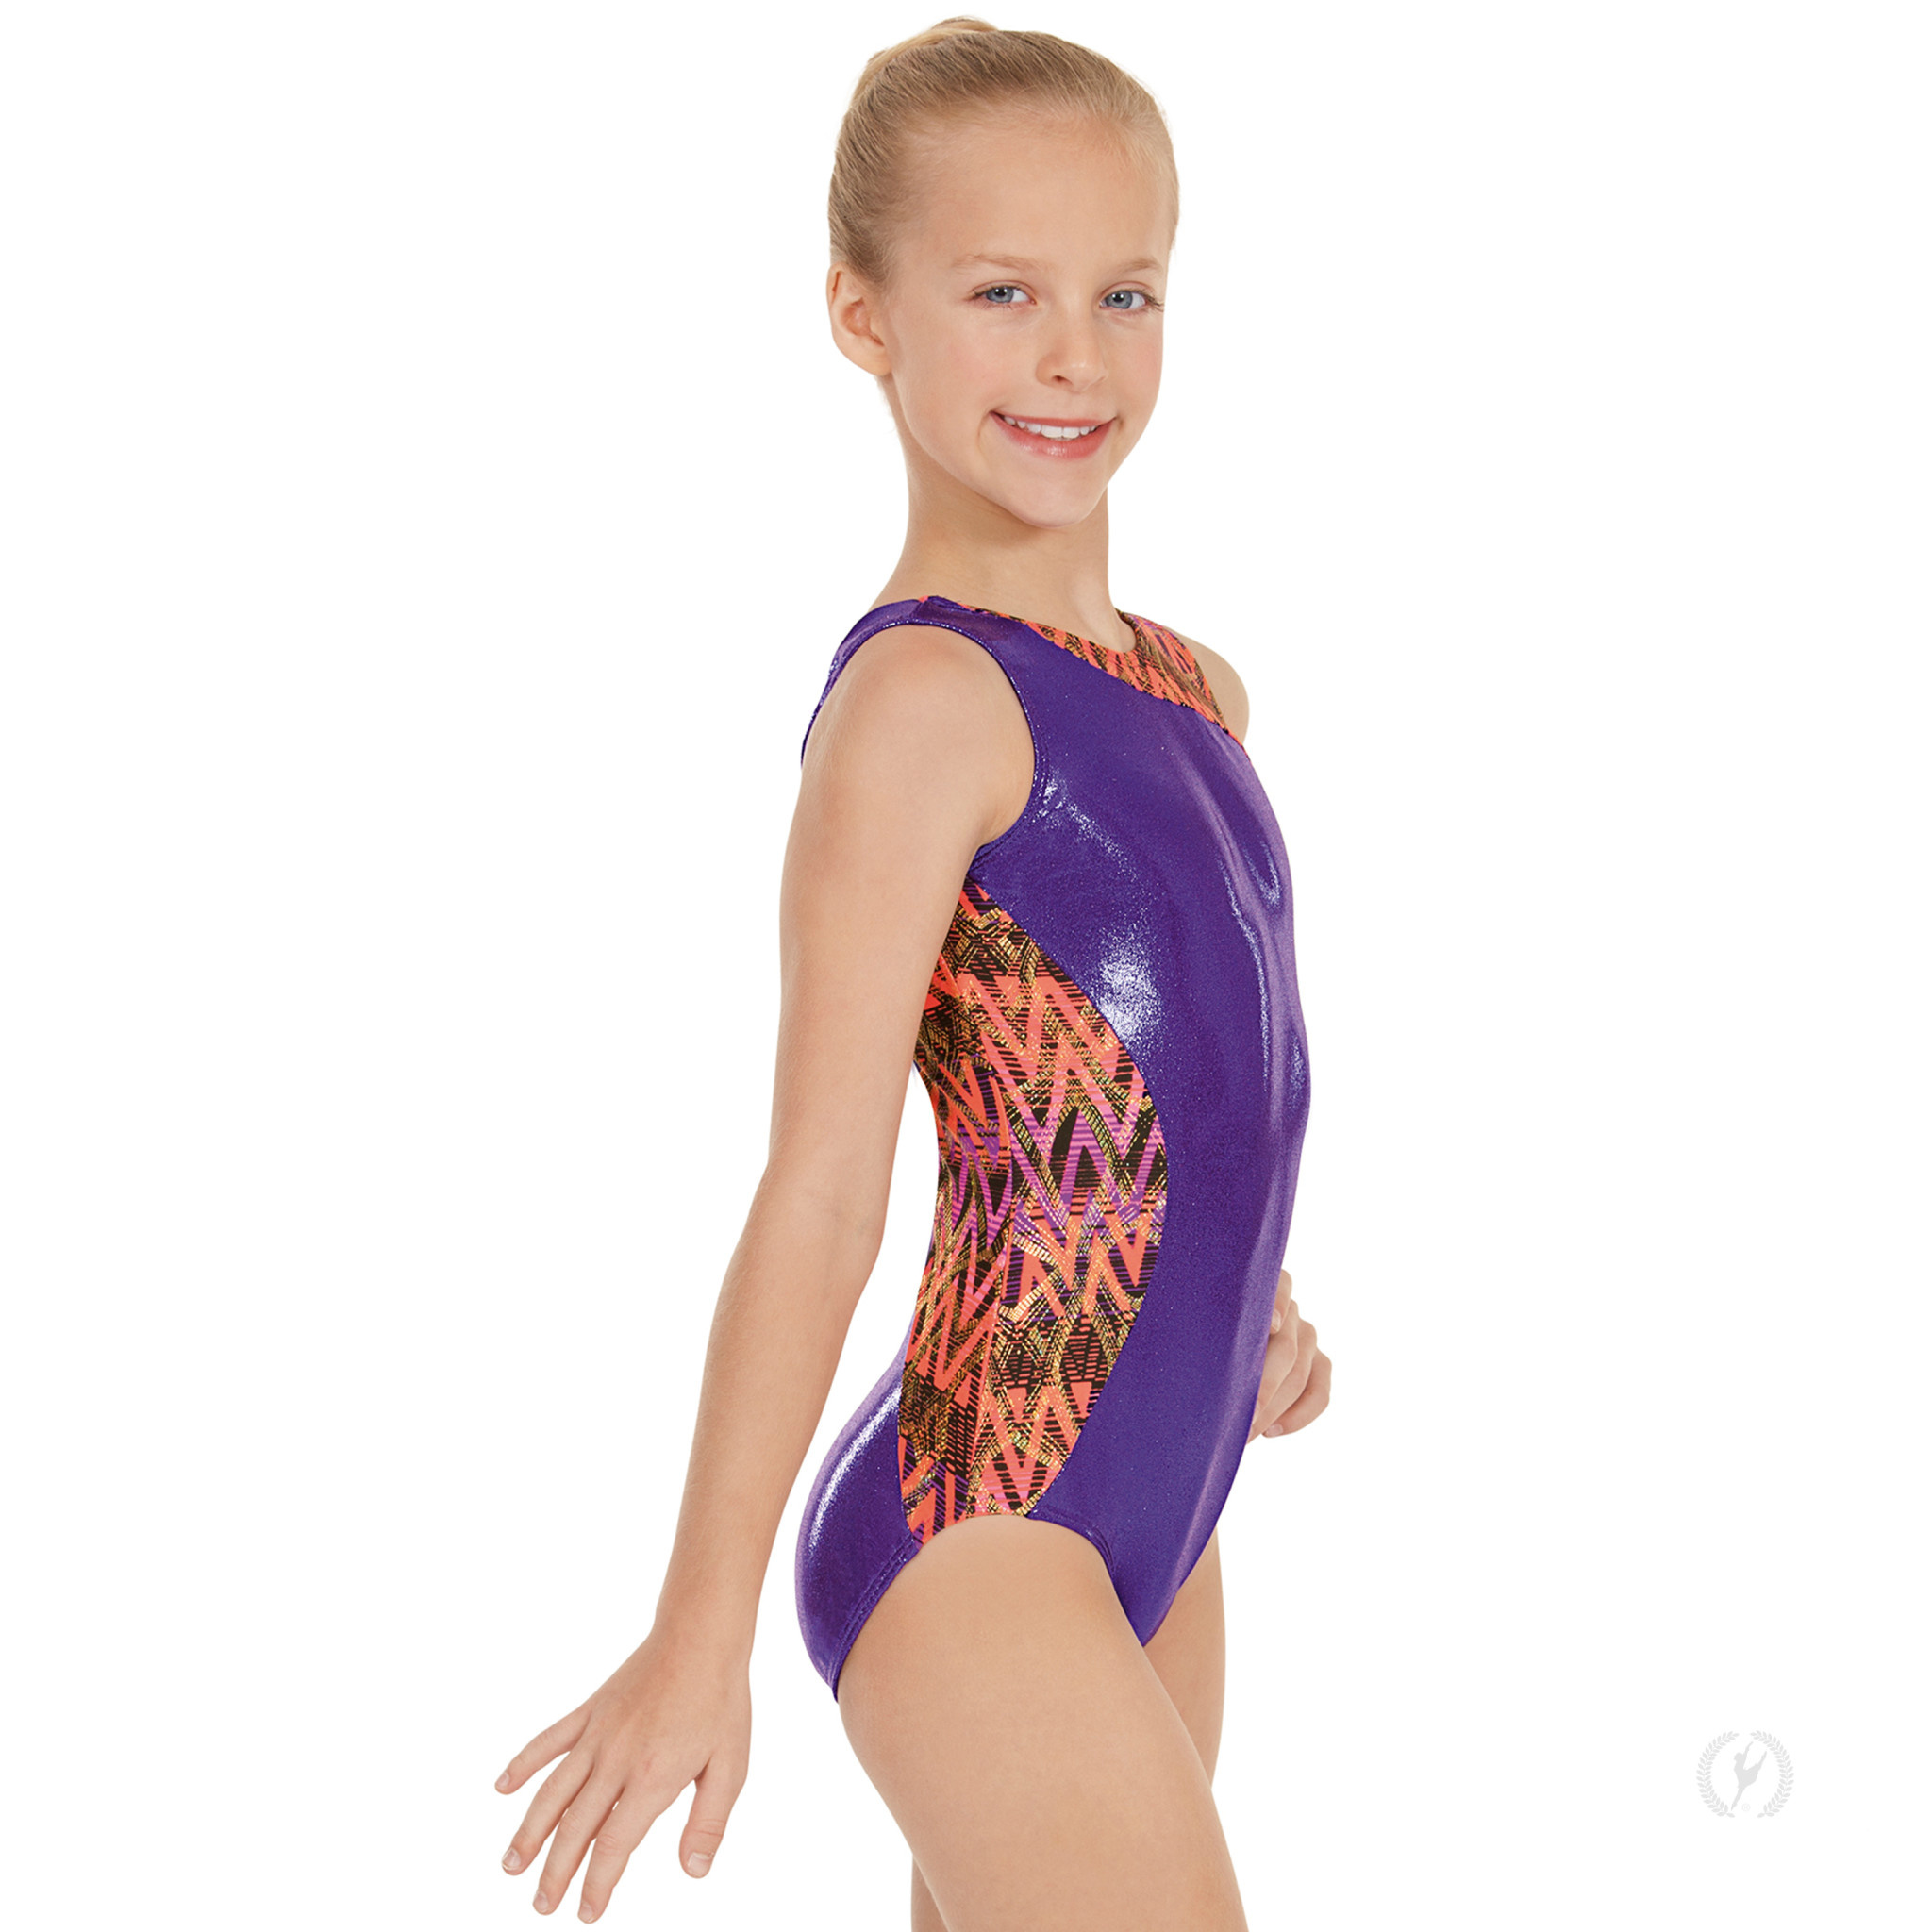 Eurotard 58462-Metallic Printed Panel Gym Leotard